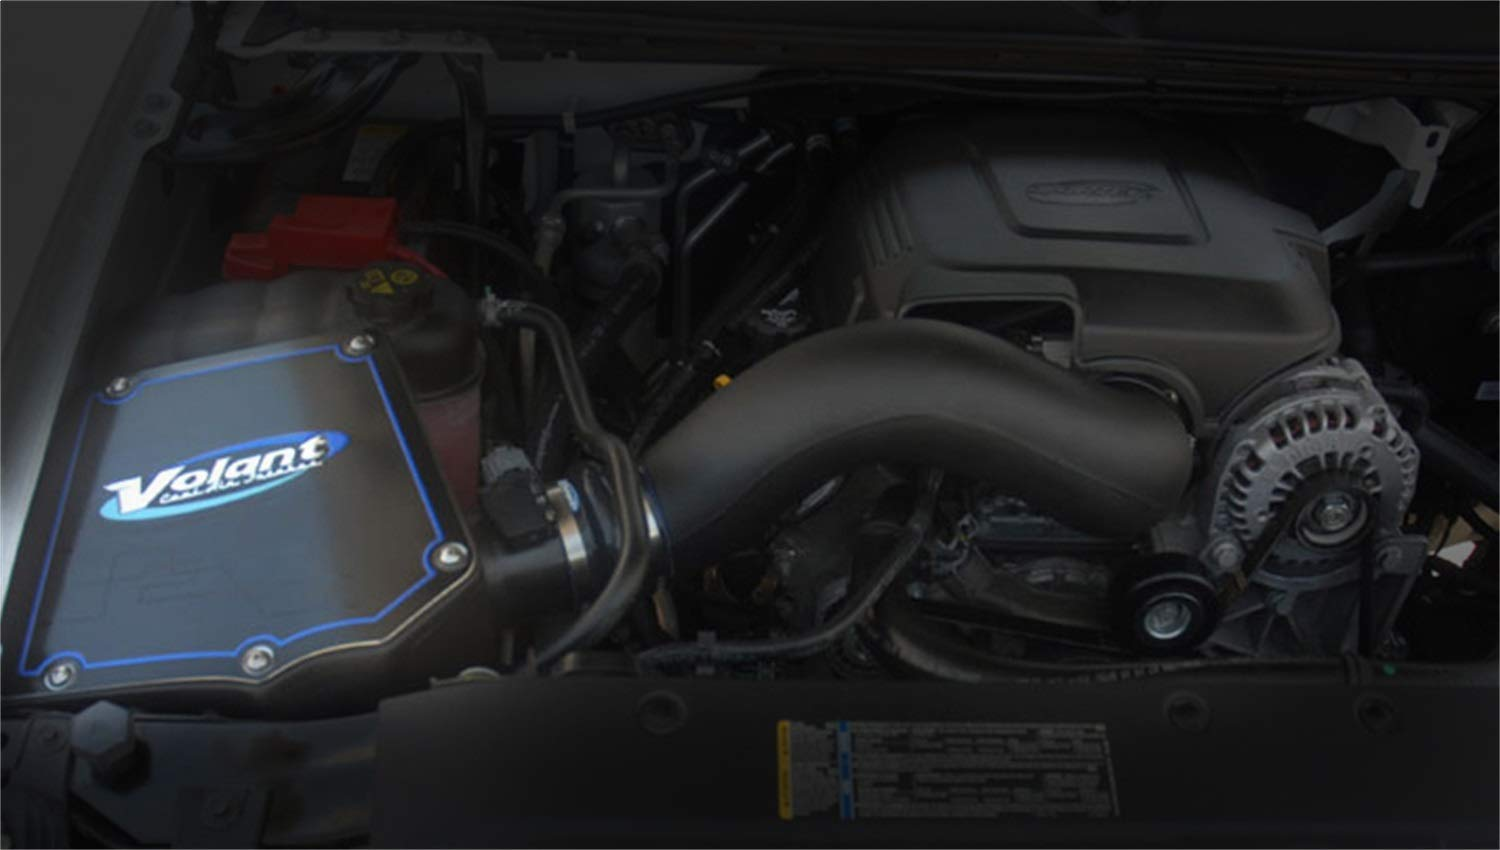 Volant 154536 Cool Air Intake Kit with PowerCore Filter by Volant